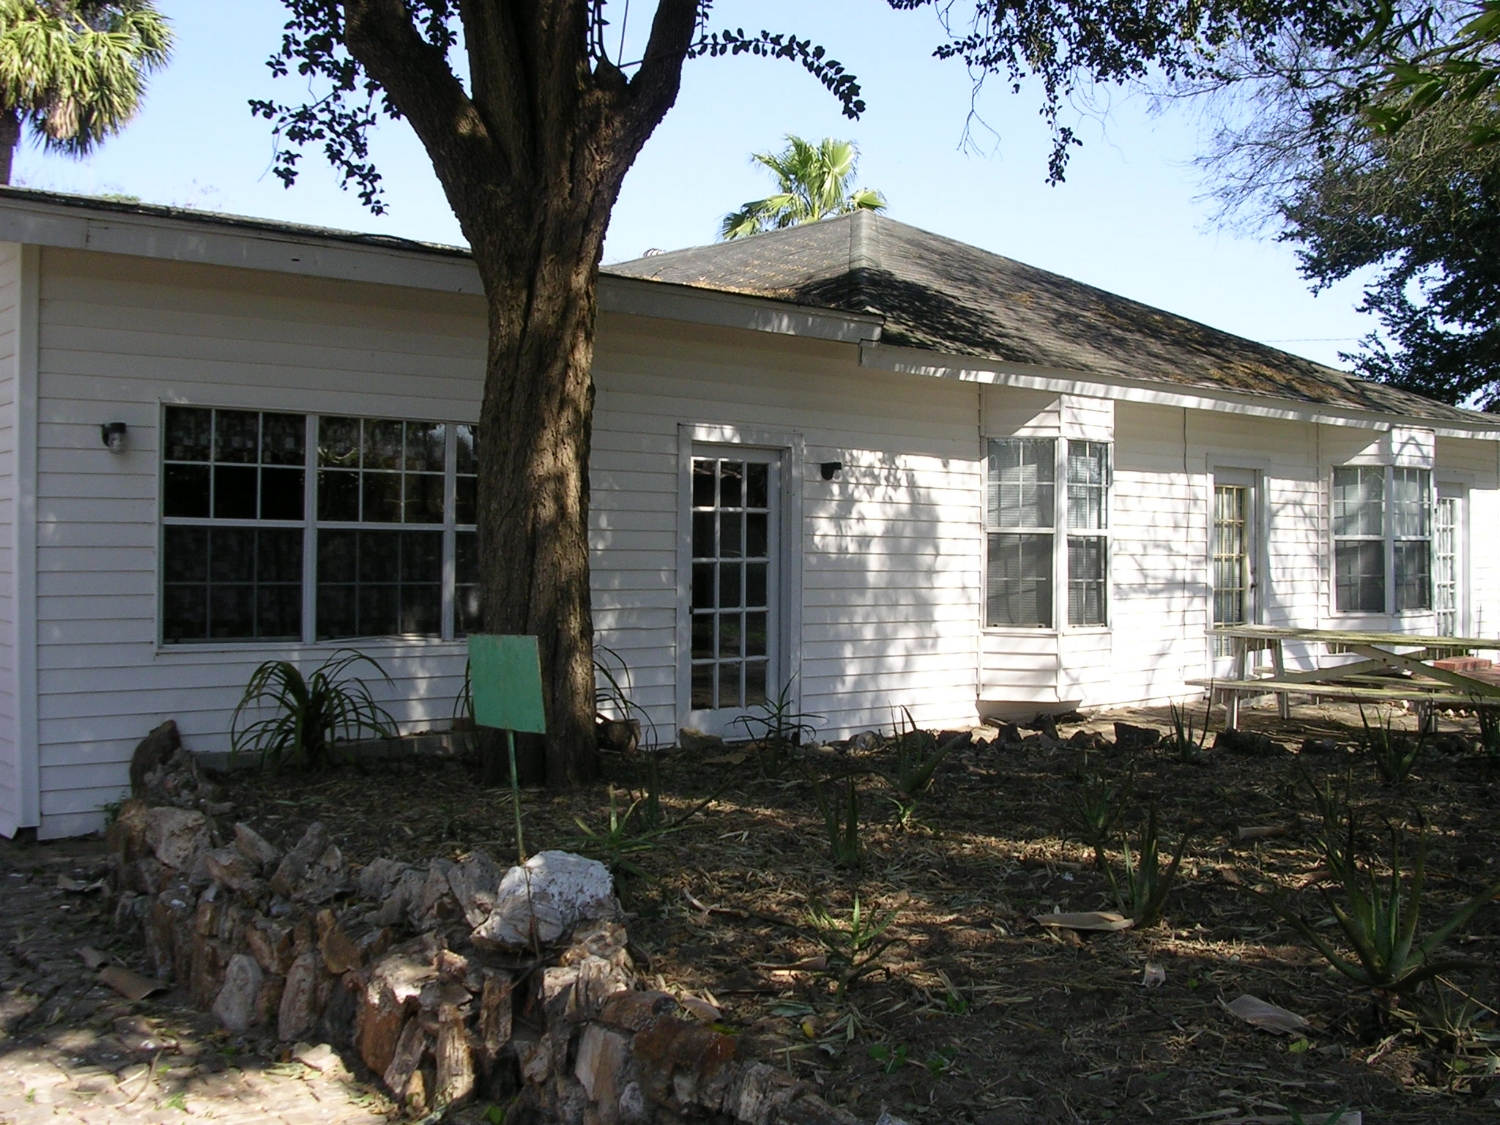 Original Ewald House